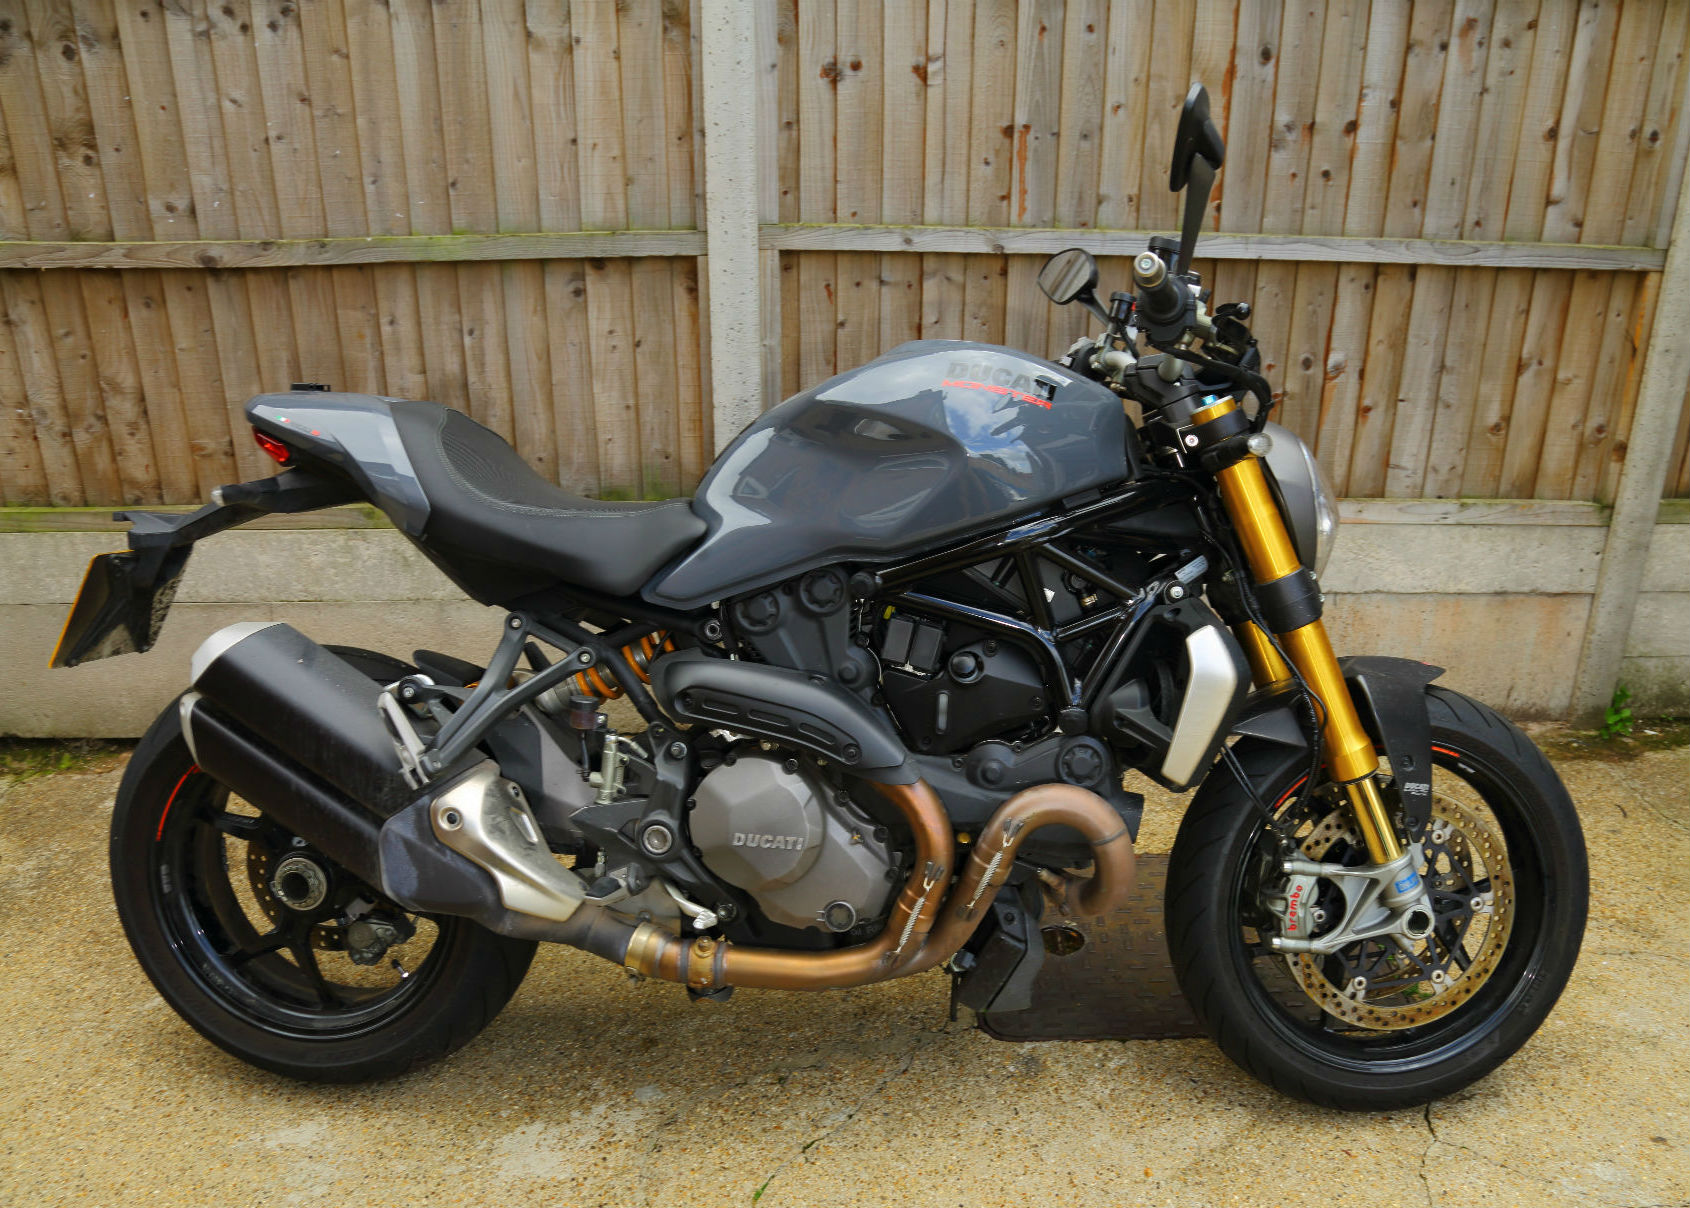 pics of a ducati monster. Black Bedroom Furniture Sets. Home Design Ideas